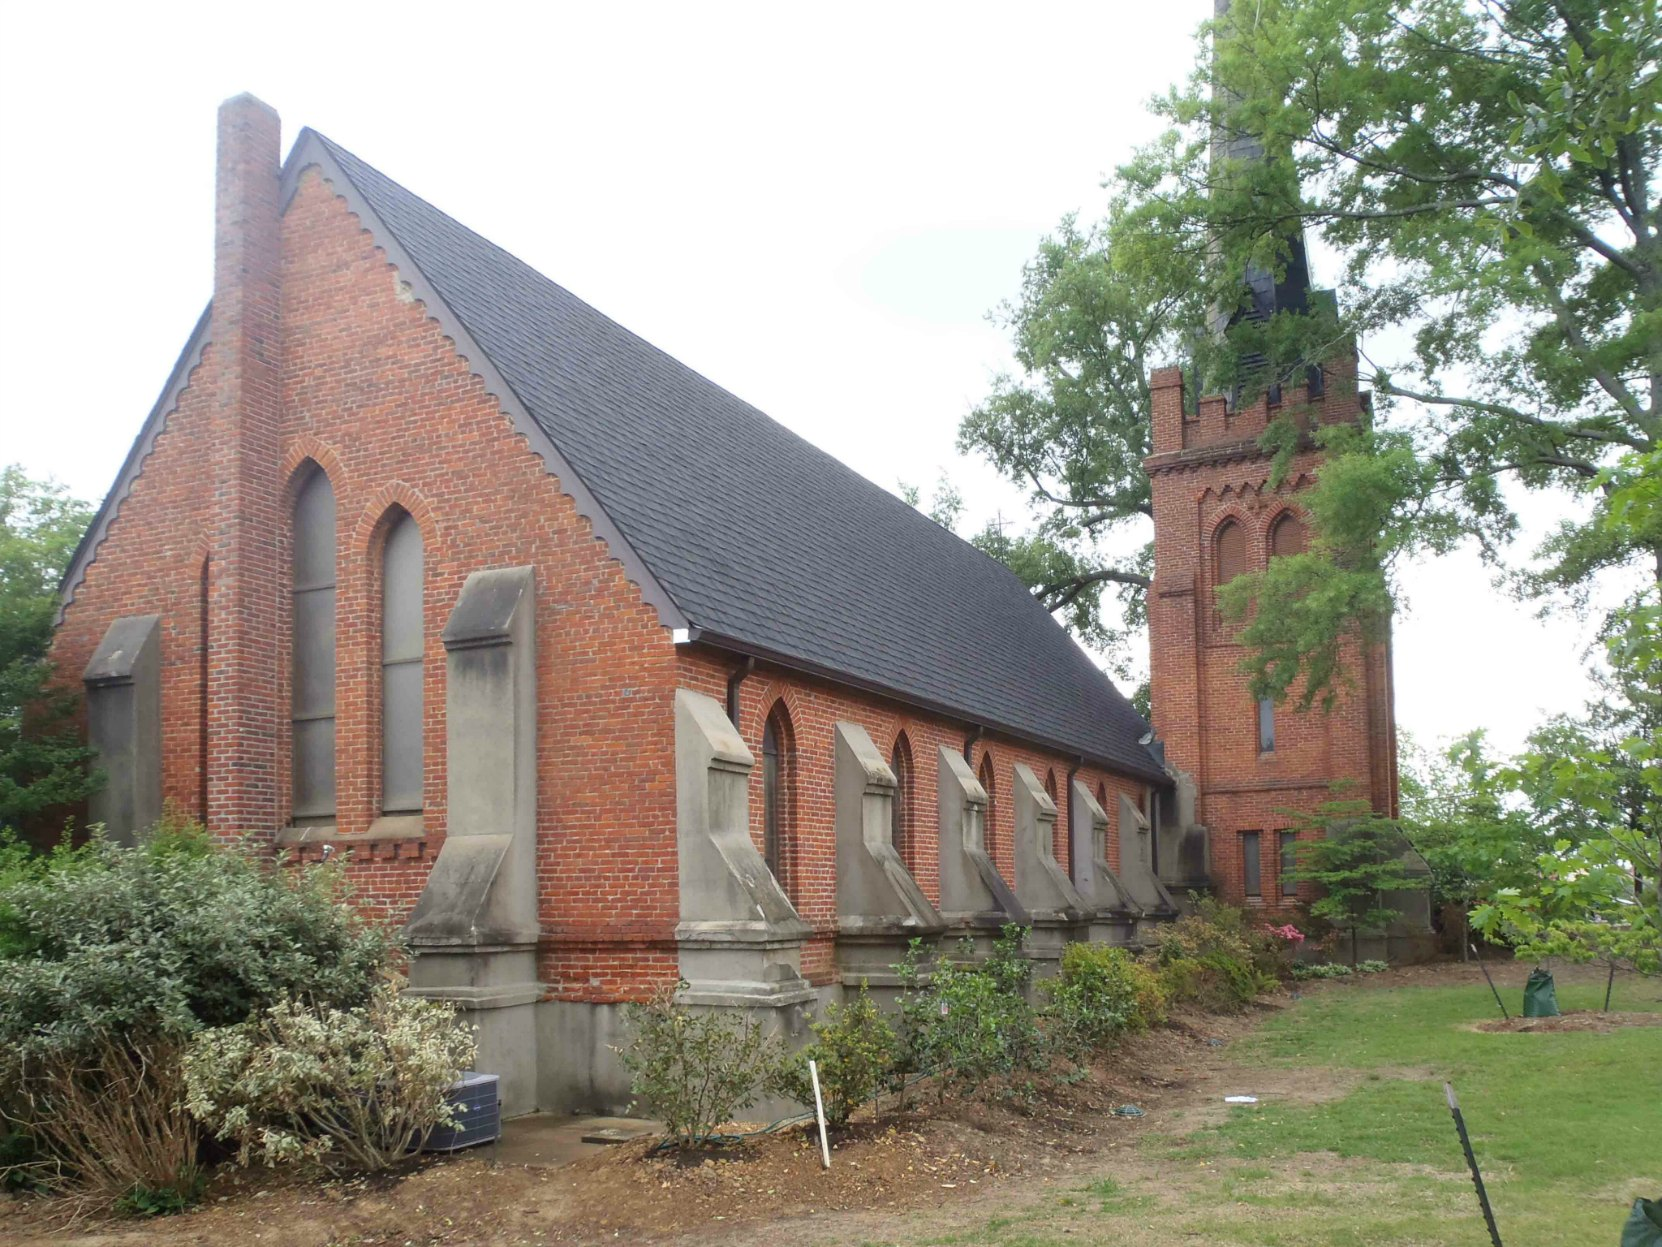 St. Peter's Episcopal Church, Oxford, Mississippi. William Faulkner was a parishioner of this church.